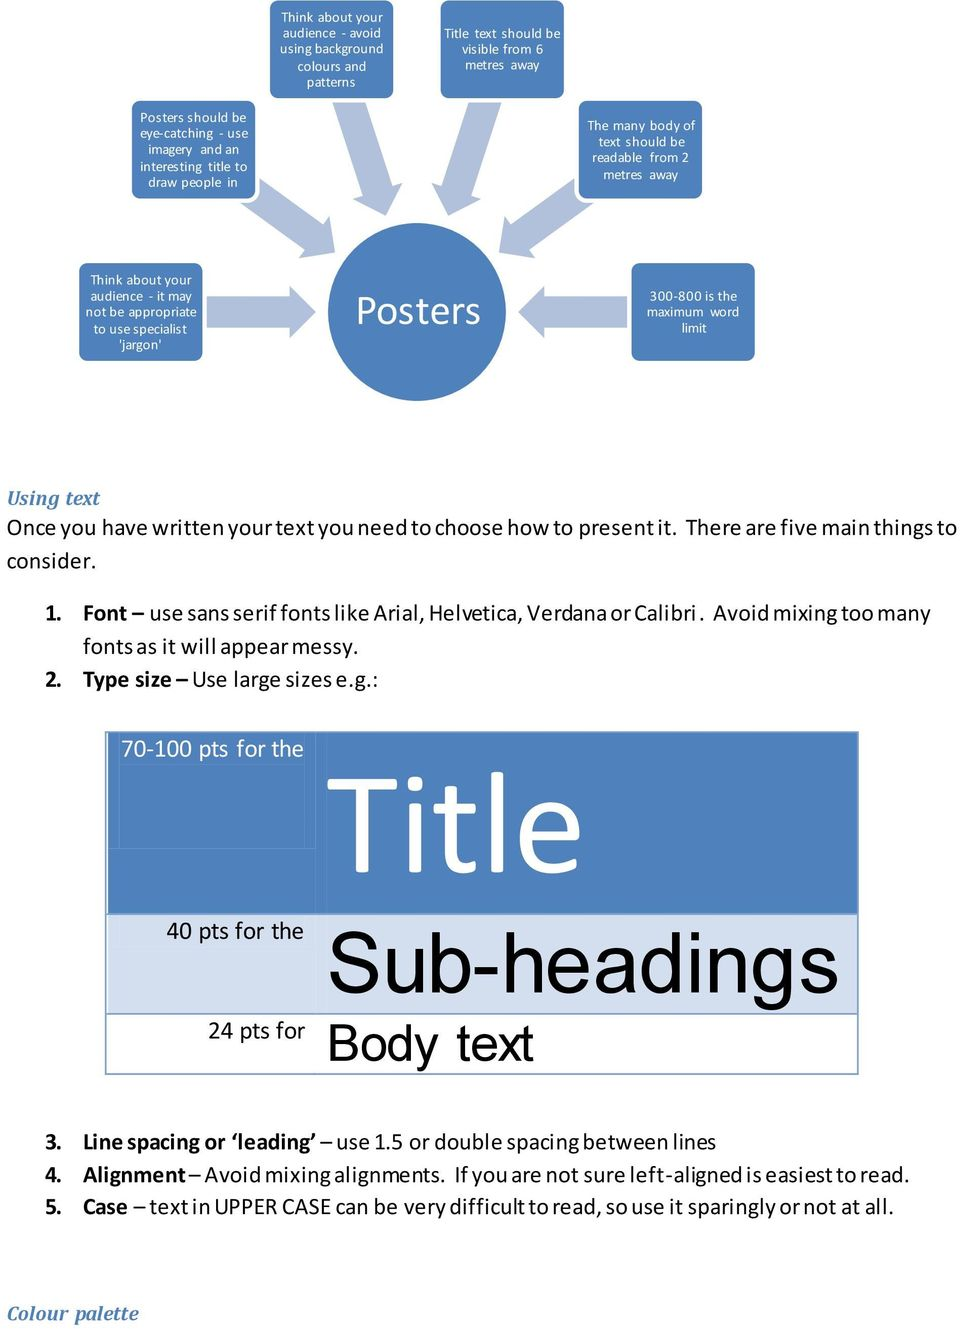 text Once you have written your text you need to choose how to present it. There are five main things to consider. 1. Font use sans serif fonts like Arial, Helvetica, Verdana or Calibri.